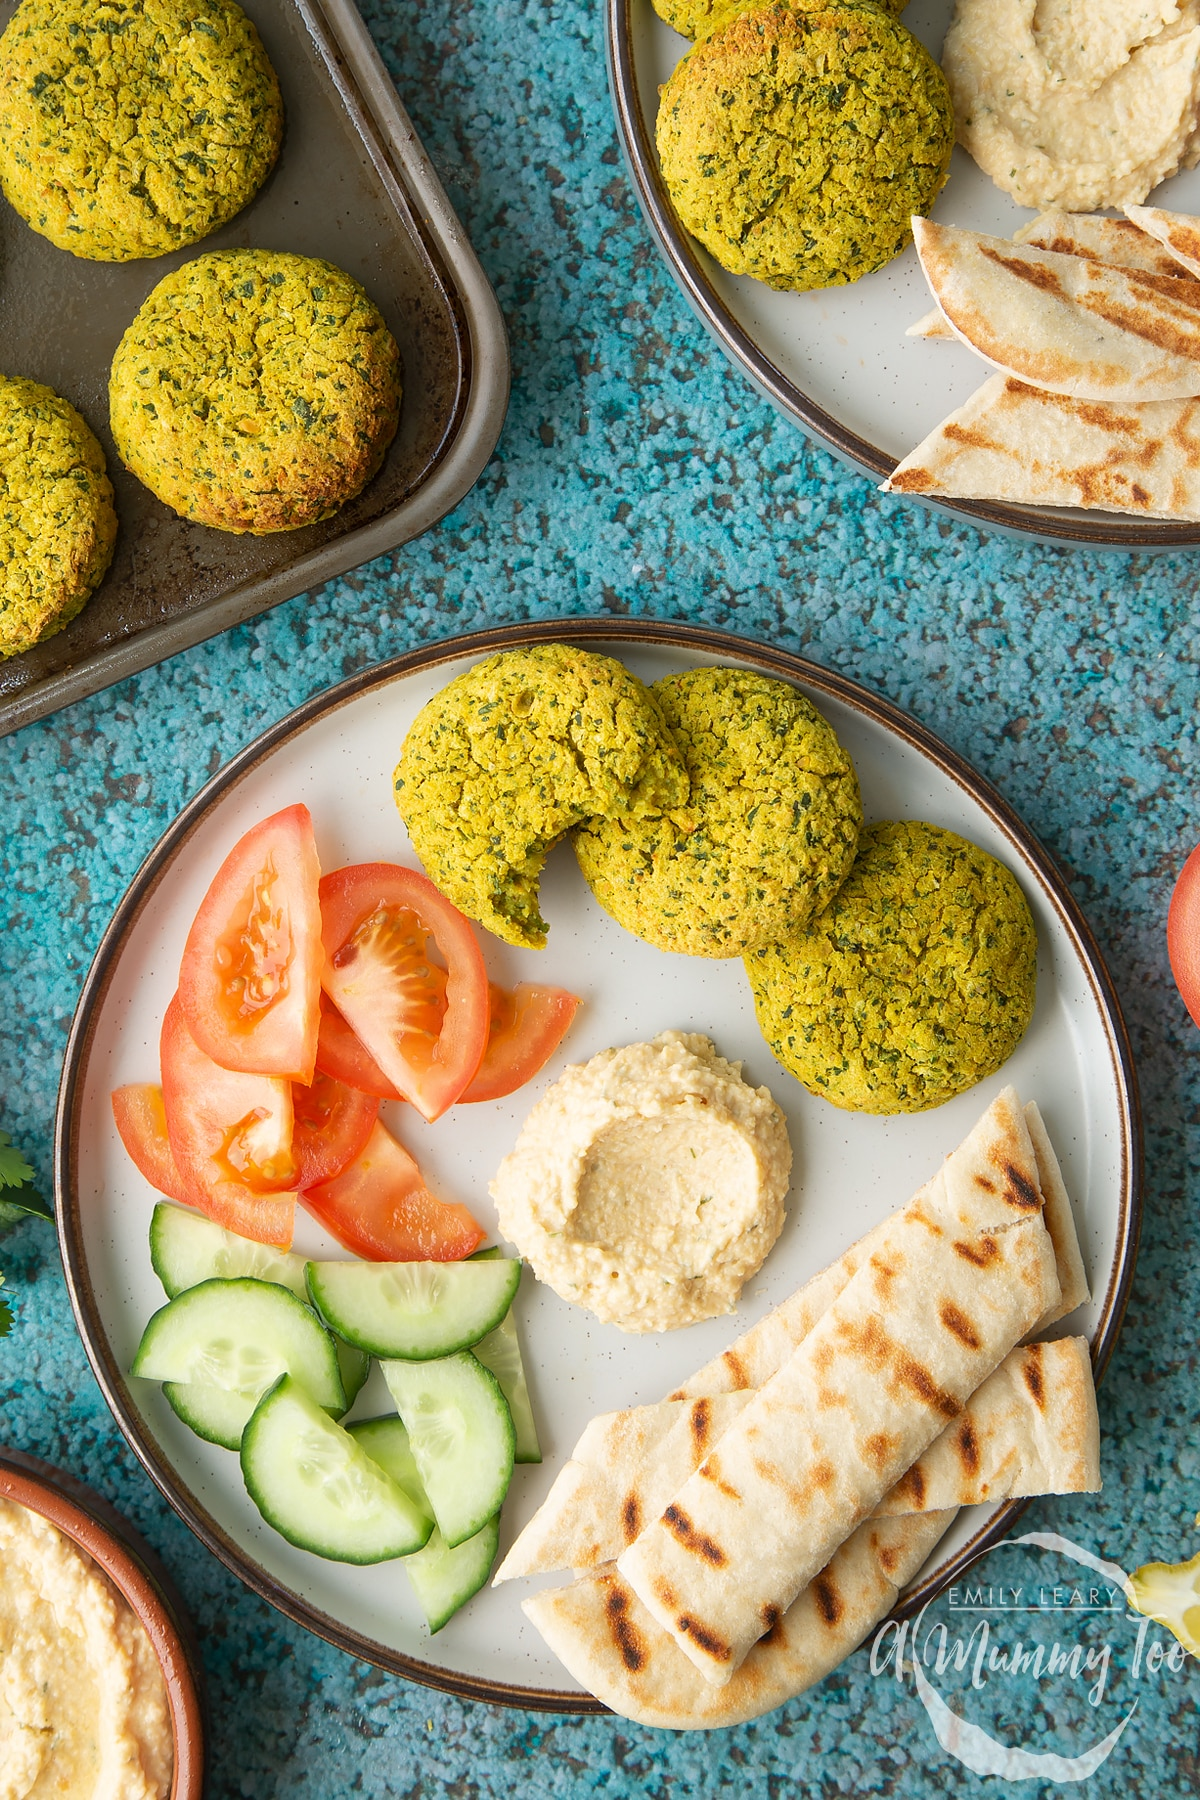 Gluten-free falafel on a plate with tomatoes, cucumber, hummus and  griddled flatbread. One of the falafel has a bite out of it.